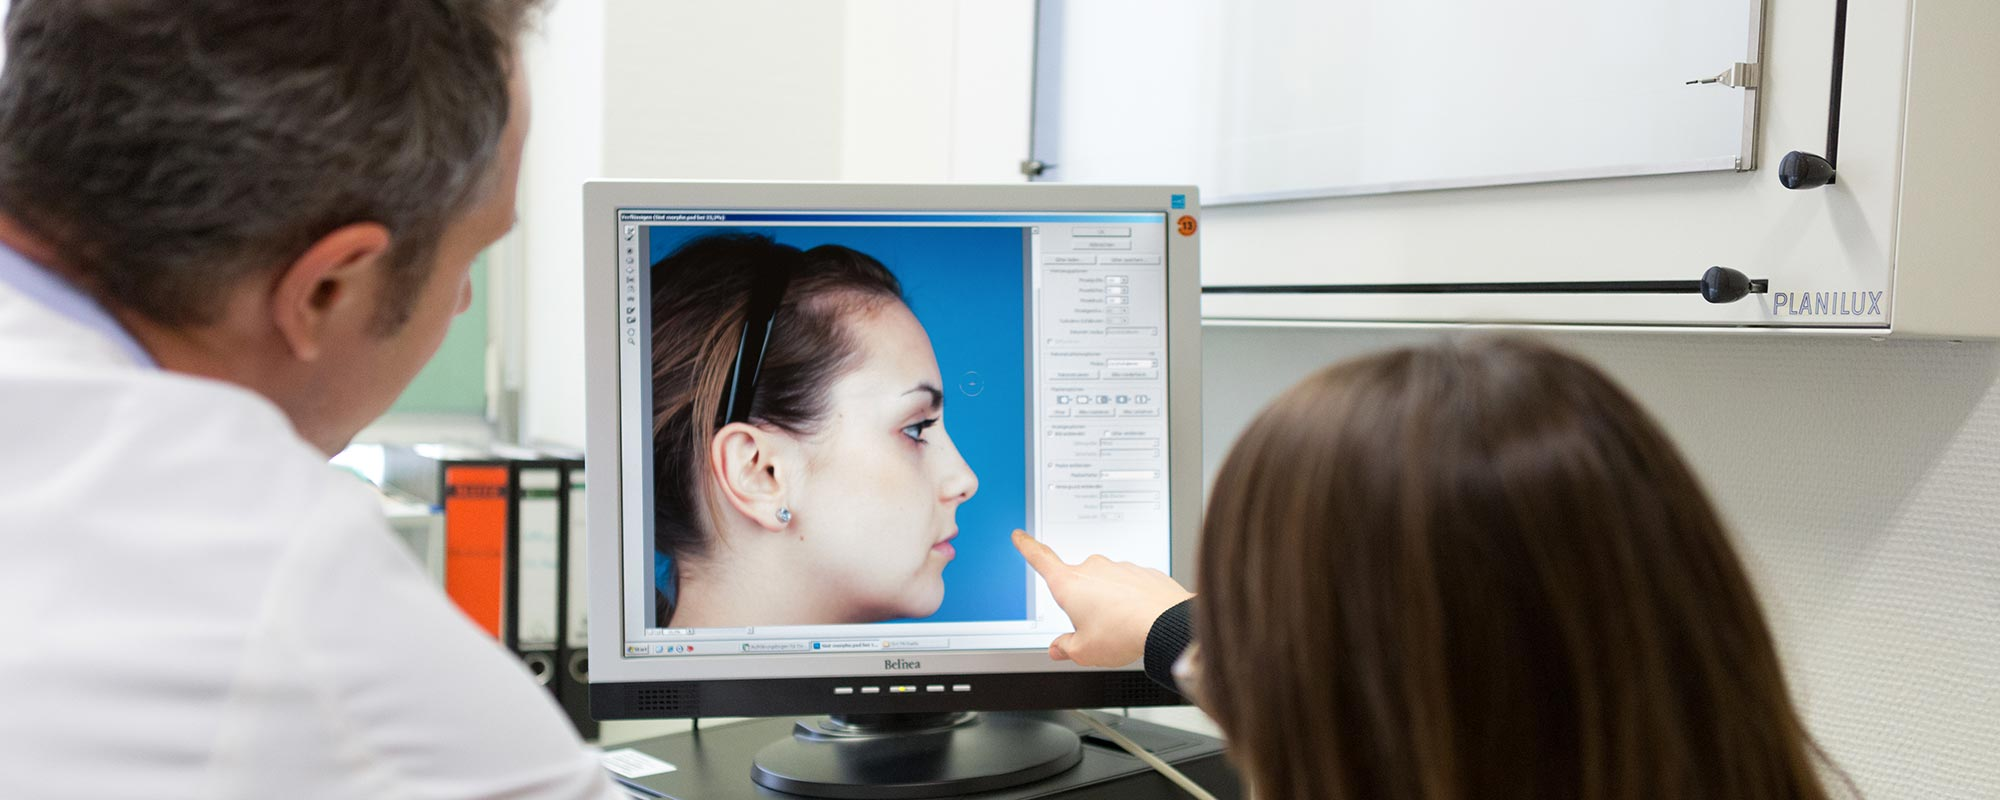 Computersimulation <br> of your nose surgery